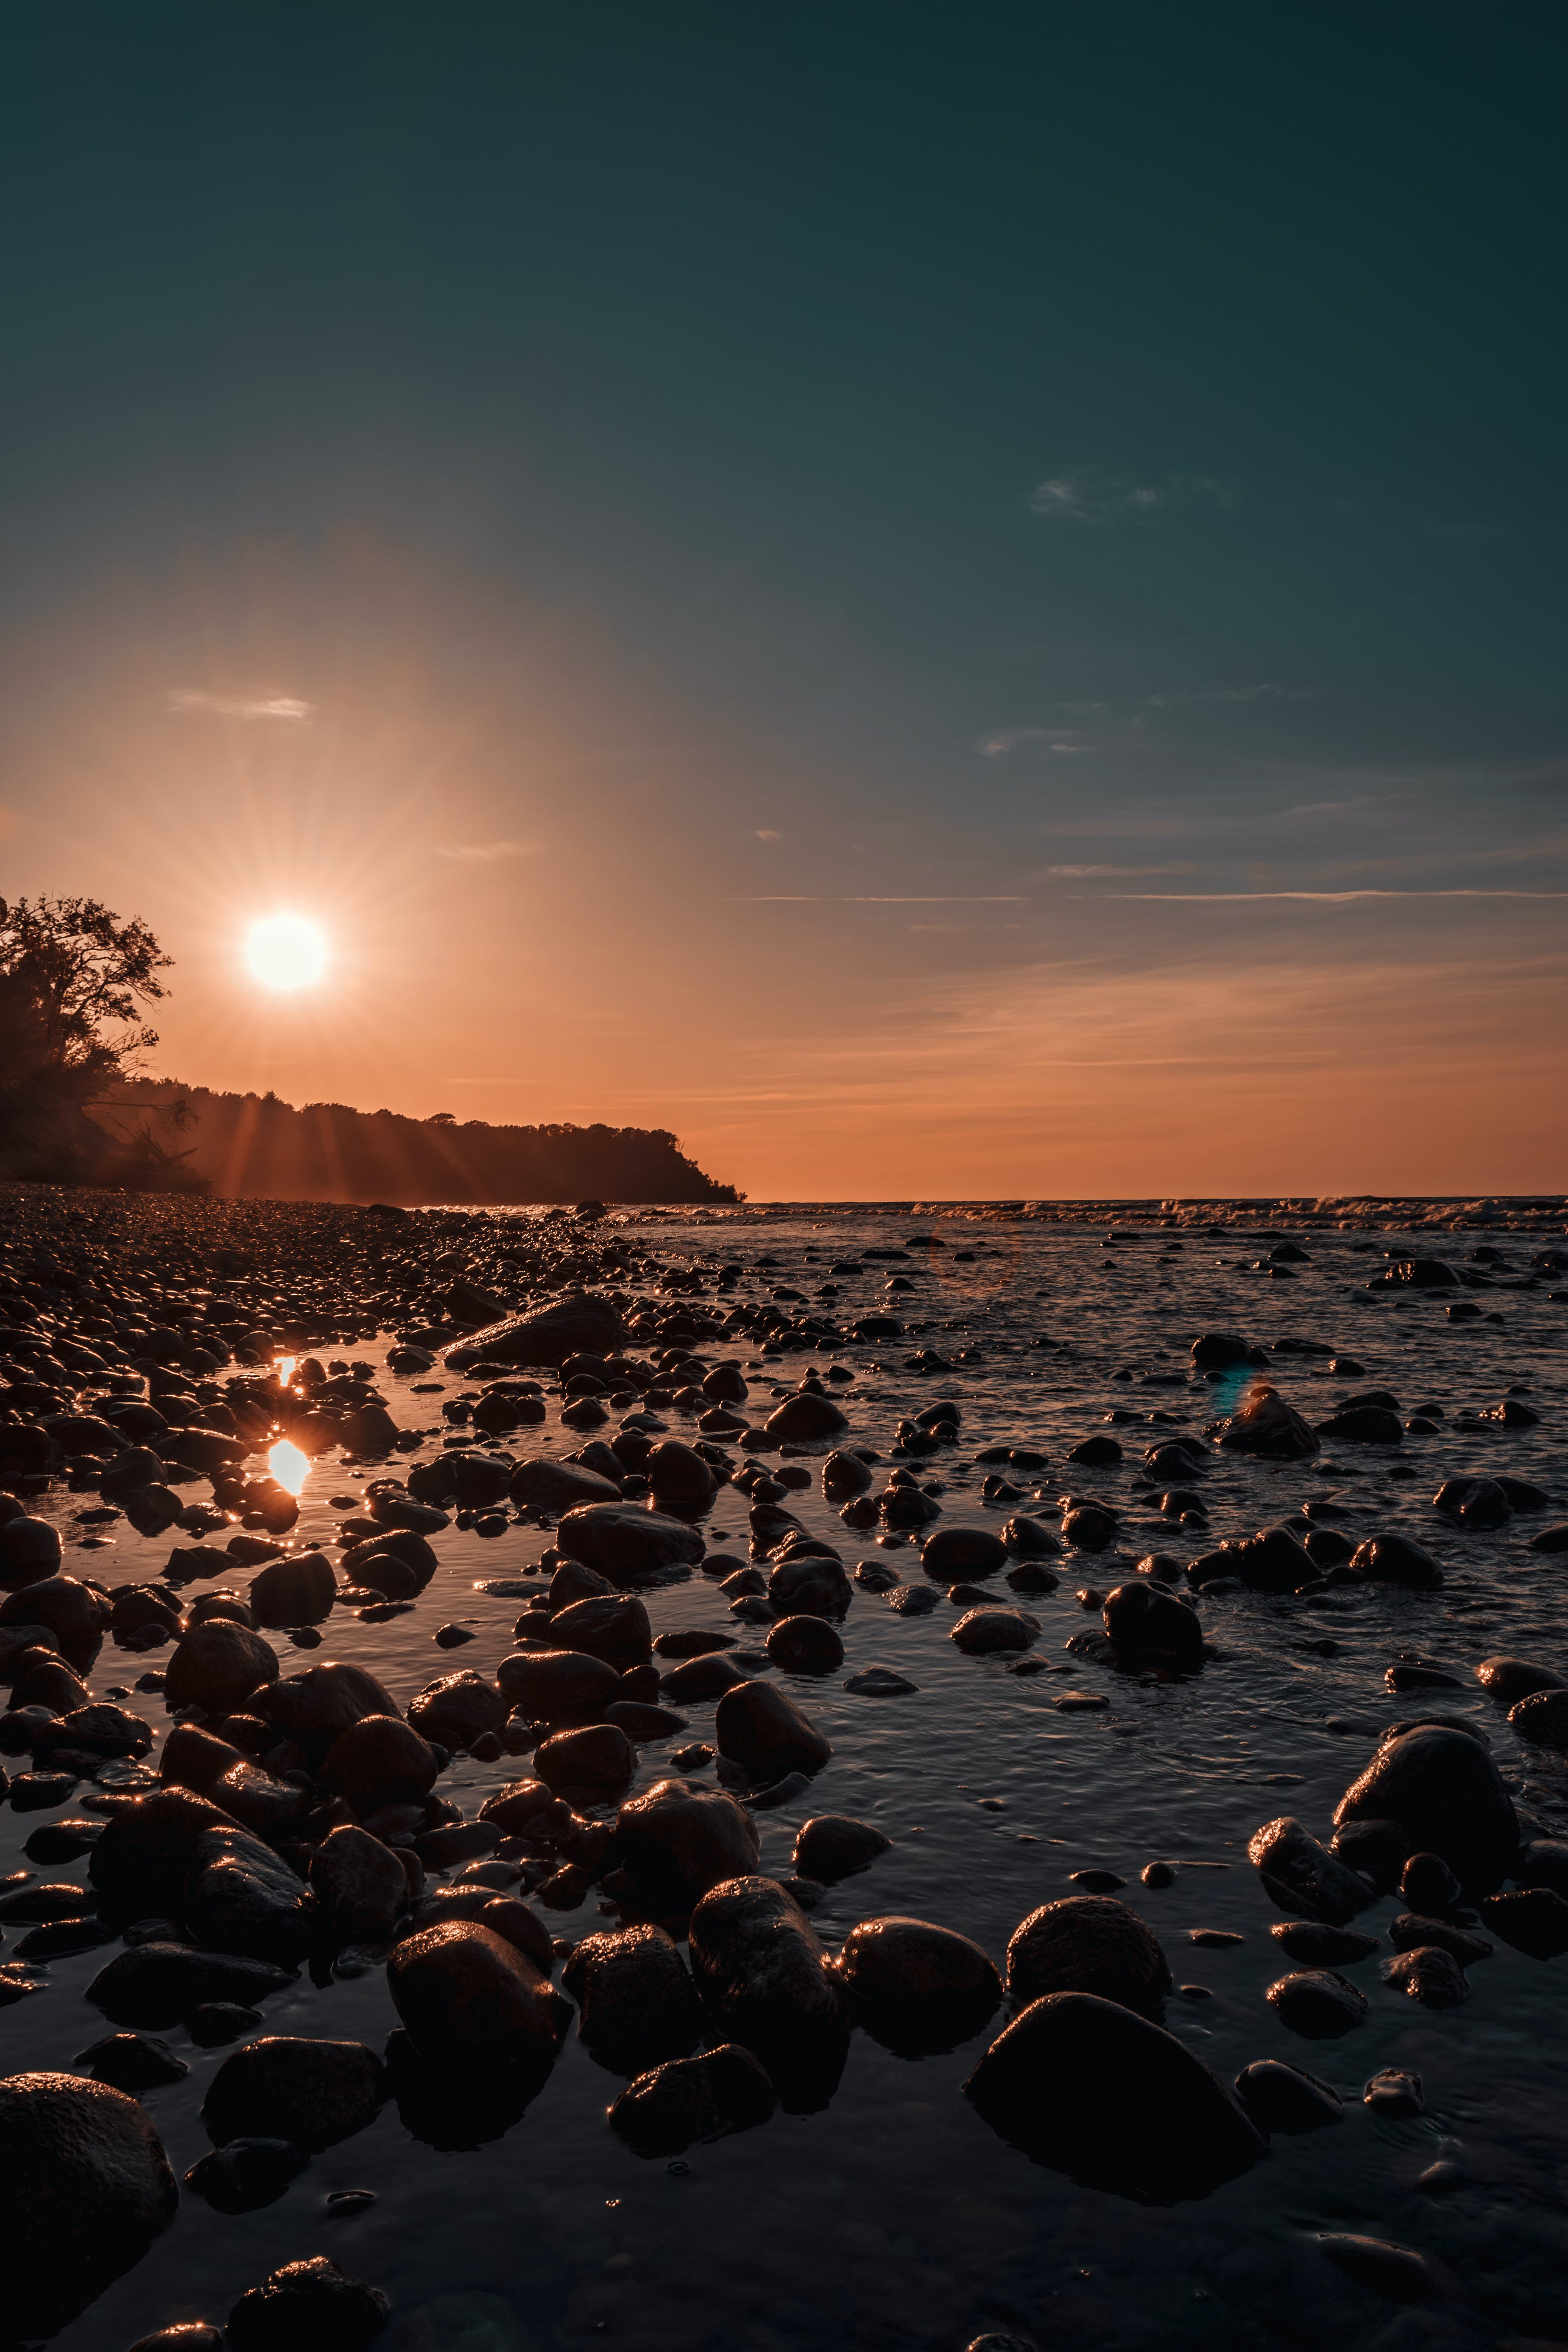 Photo Of Rock Rubles Beside Calm Body Of Water during Golden Hour